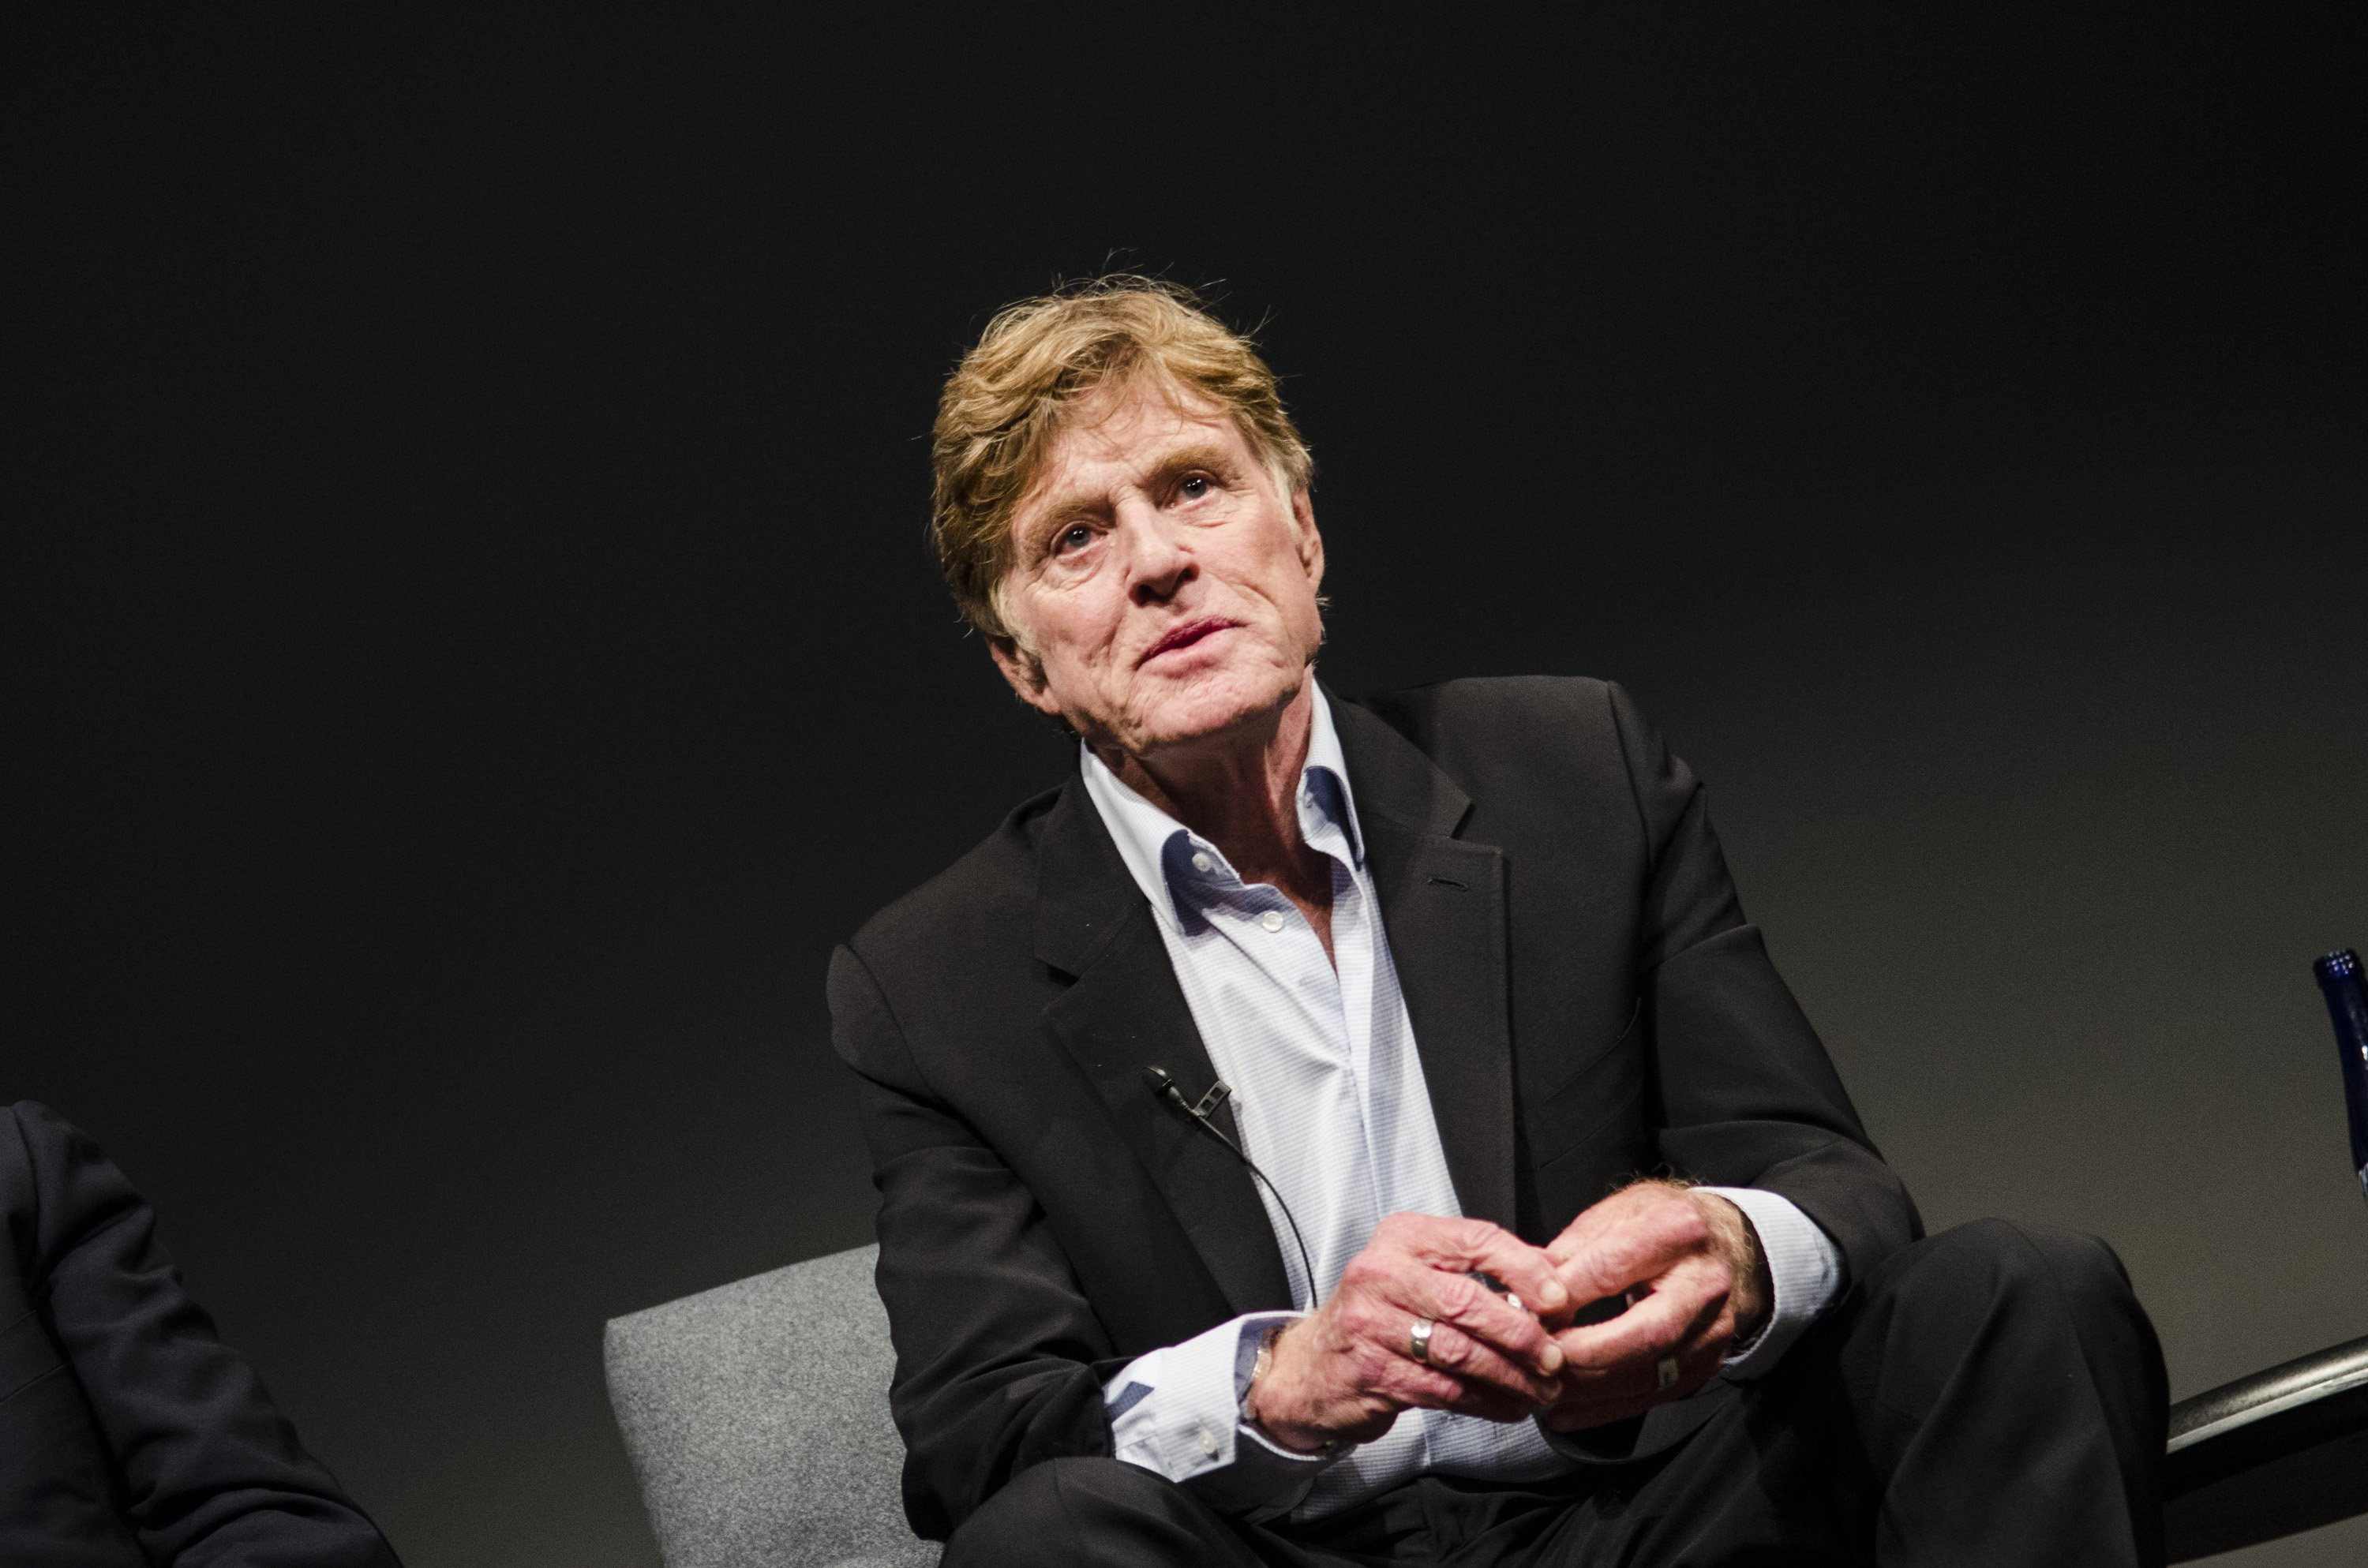 """Image Credits: Getty Images / Kris Connor 